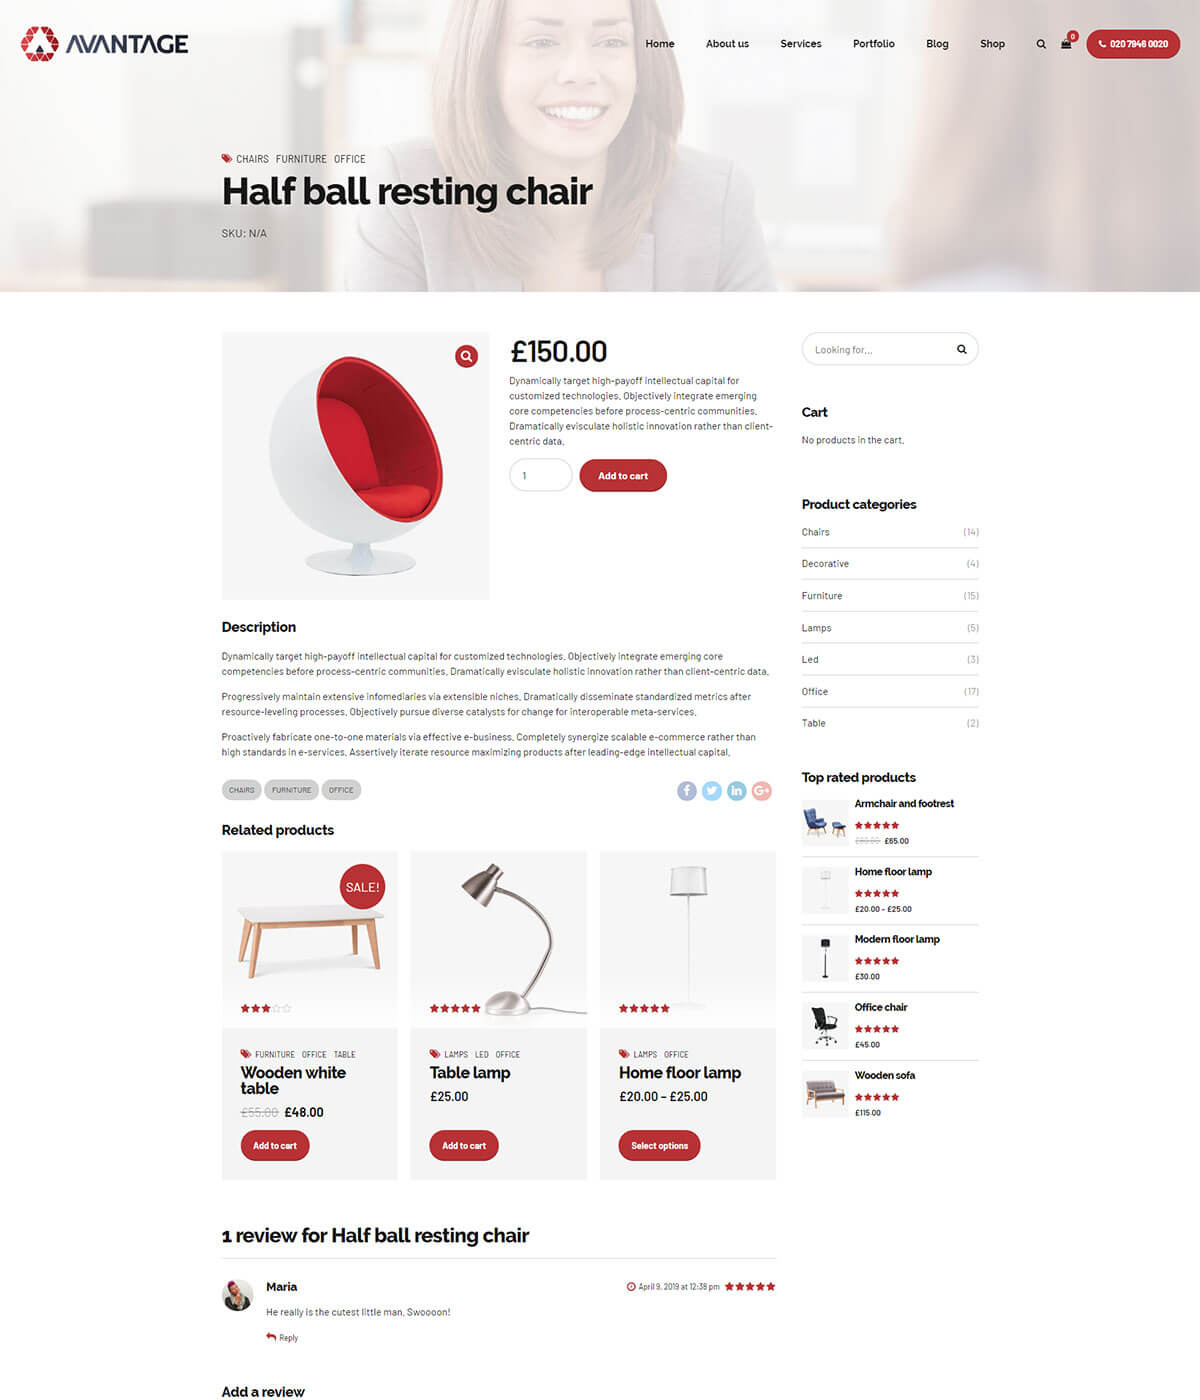 https://avantage.bold-themes.com/wp-content/uploads/2019/05/hr-15-product.jpg